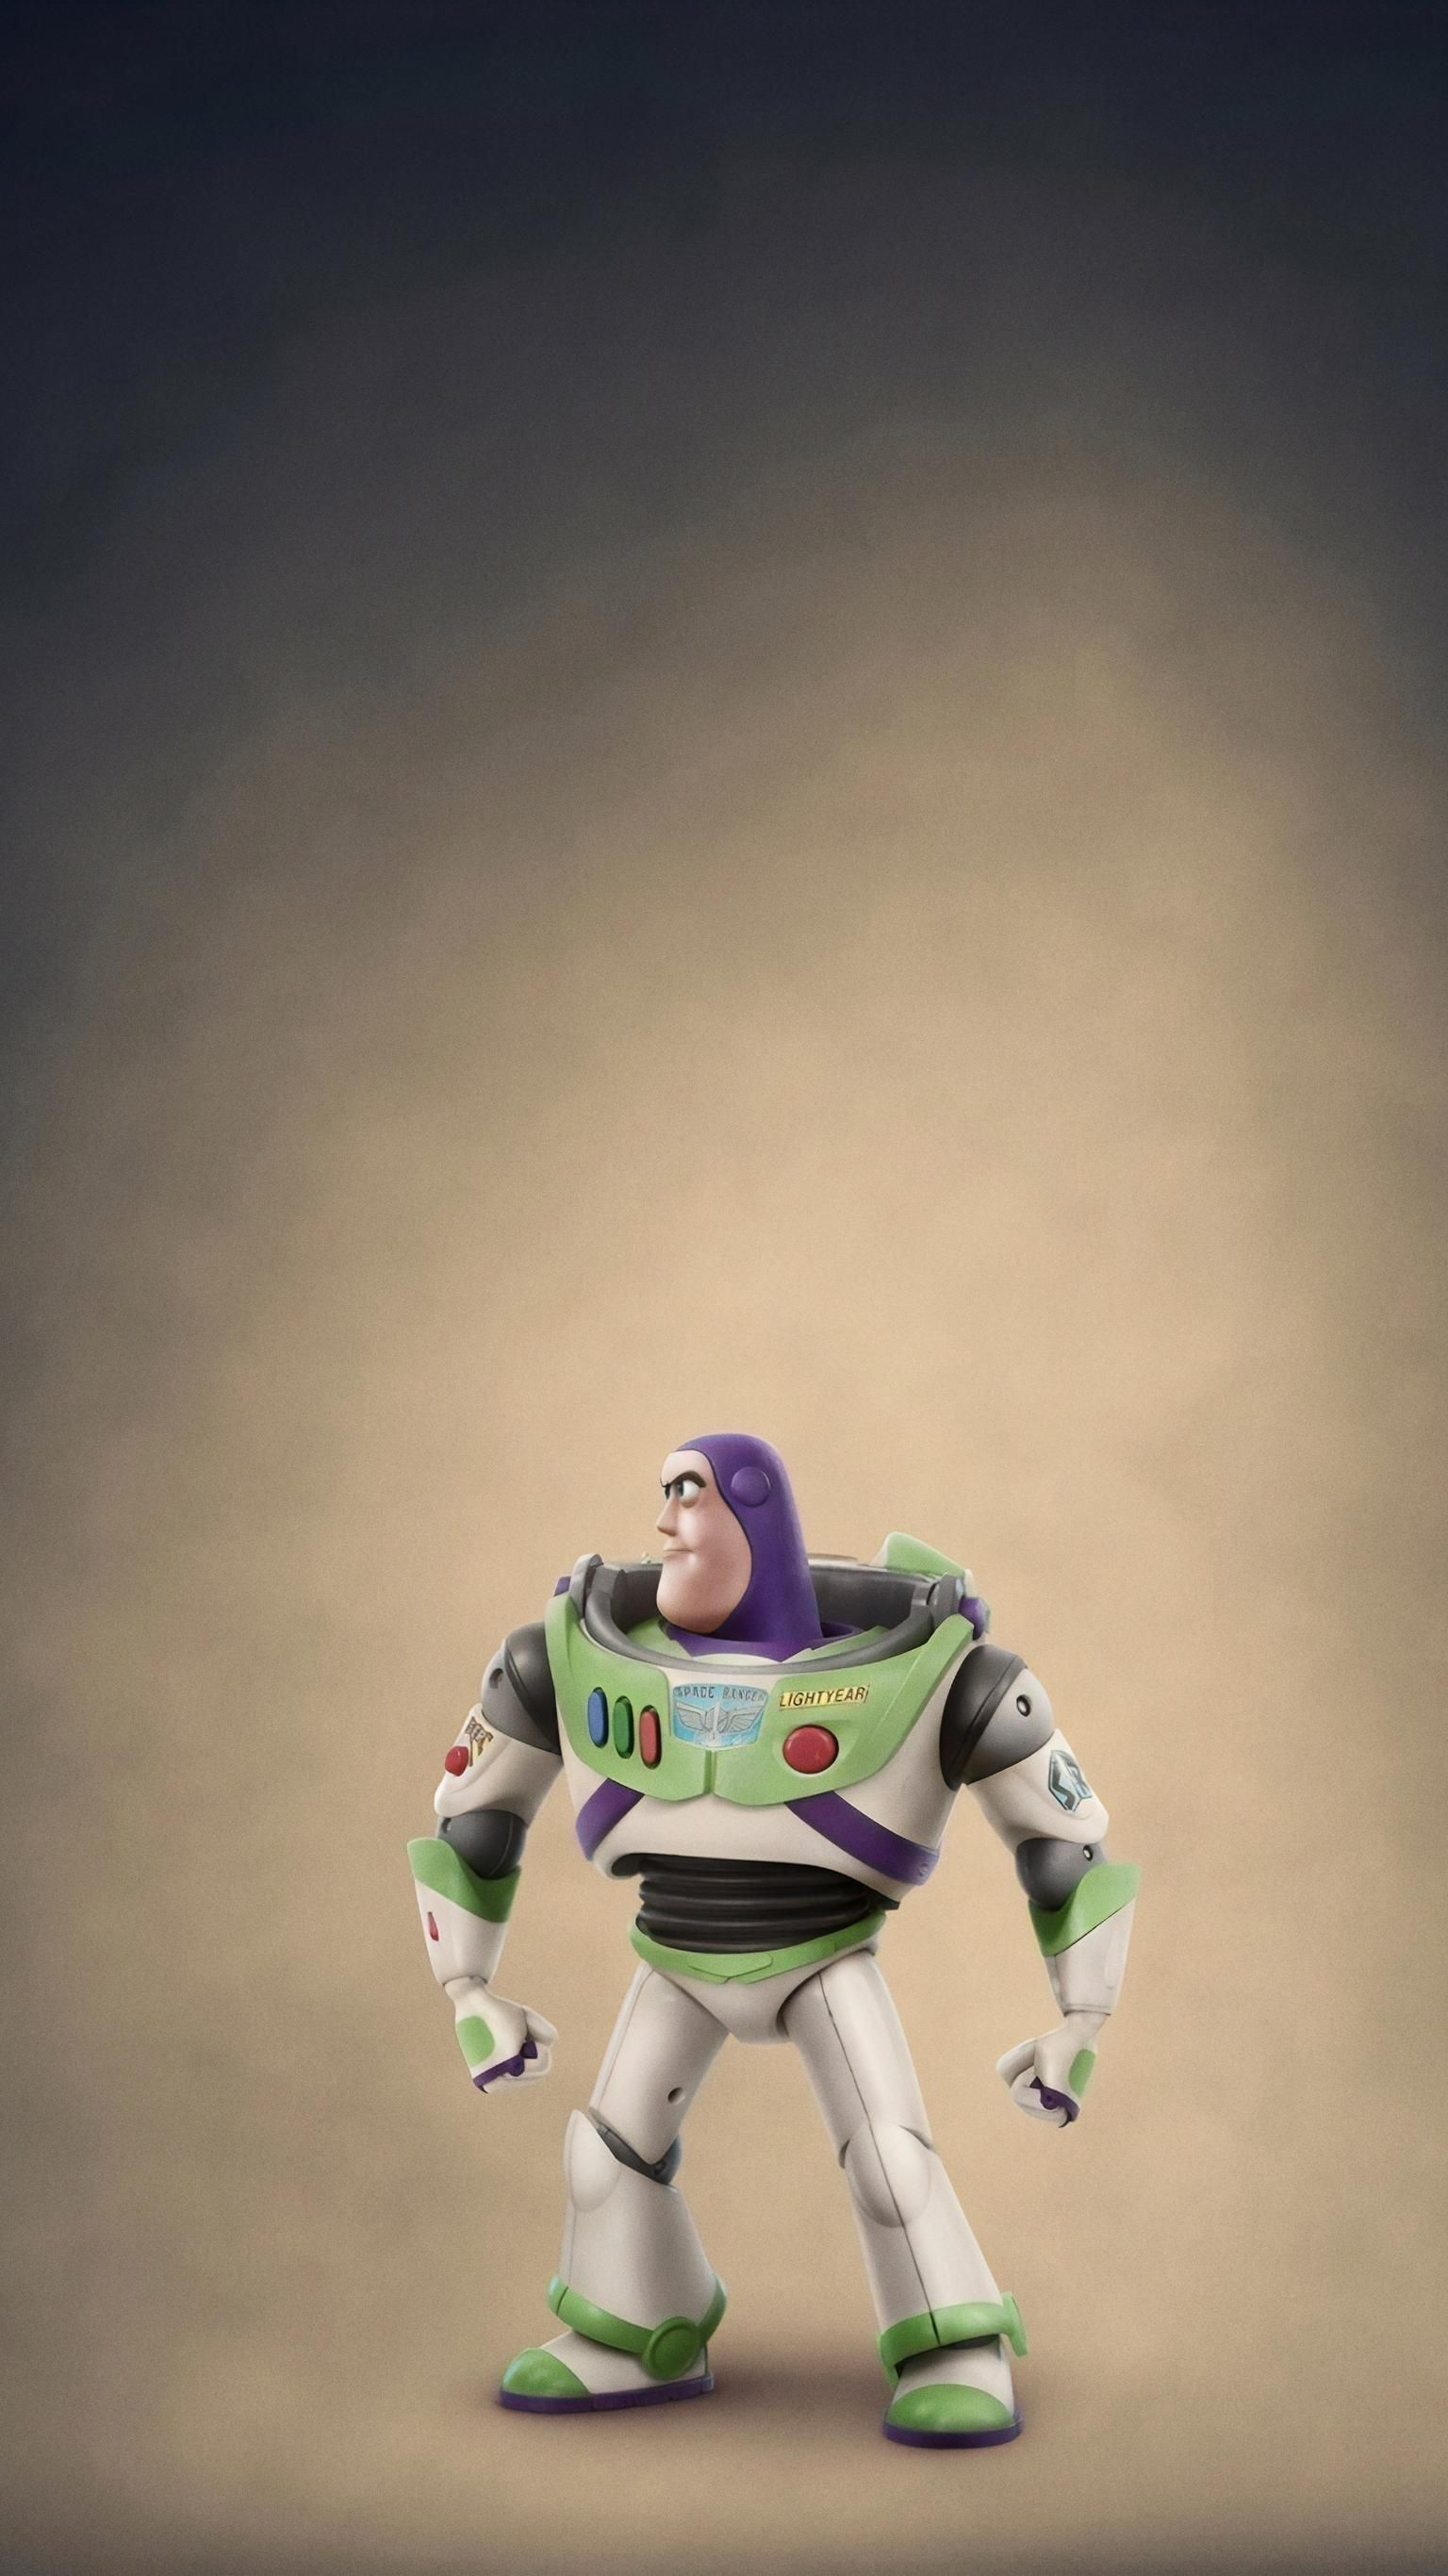 Toy Story 4 2019 Phone Wallpaper in 2019 I PAD Movie posters 1536x2732